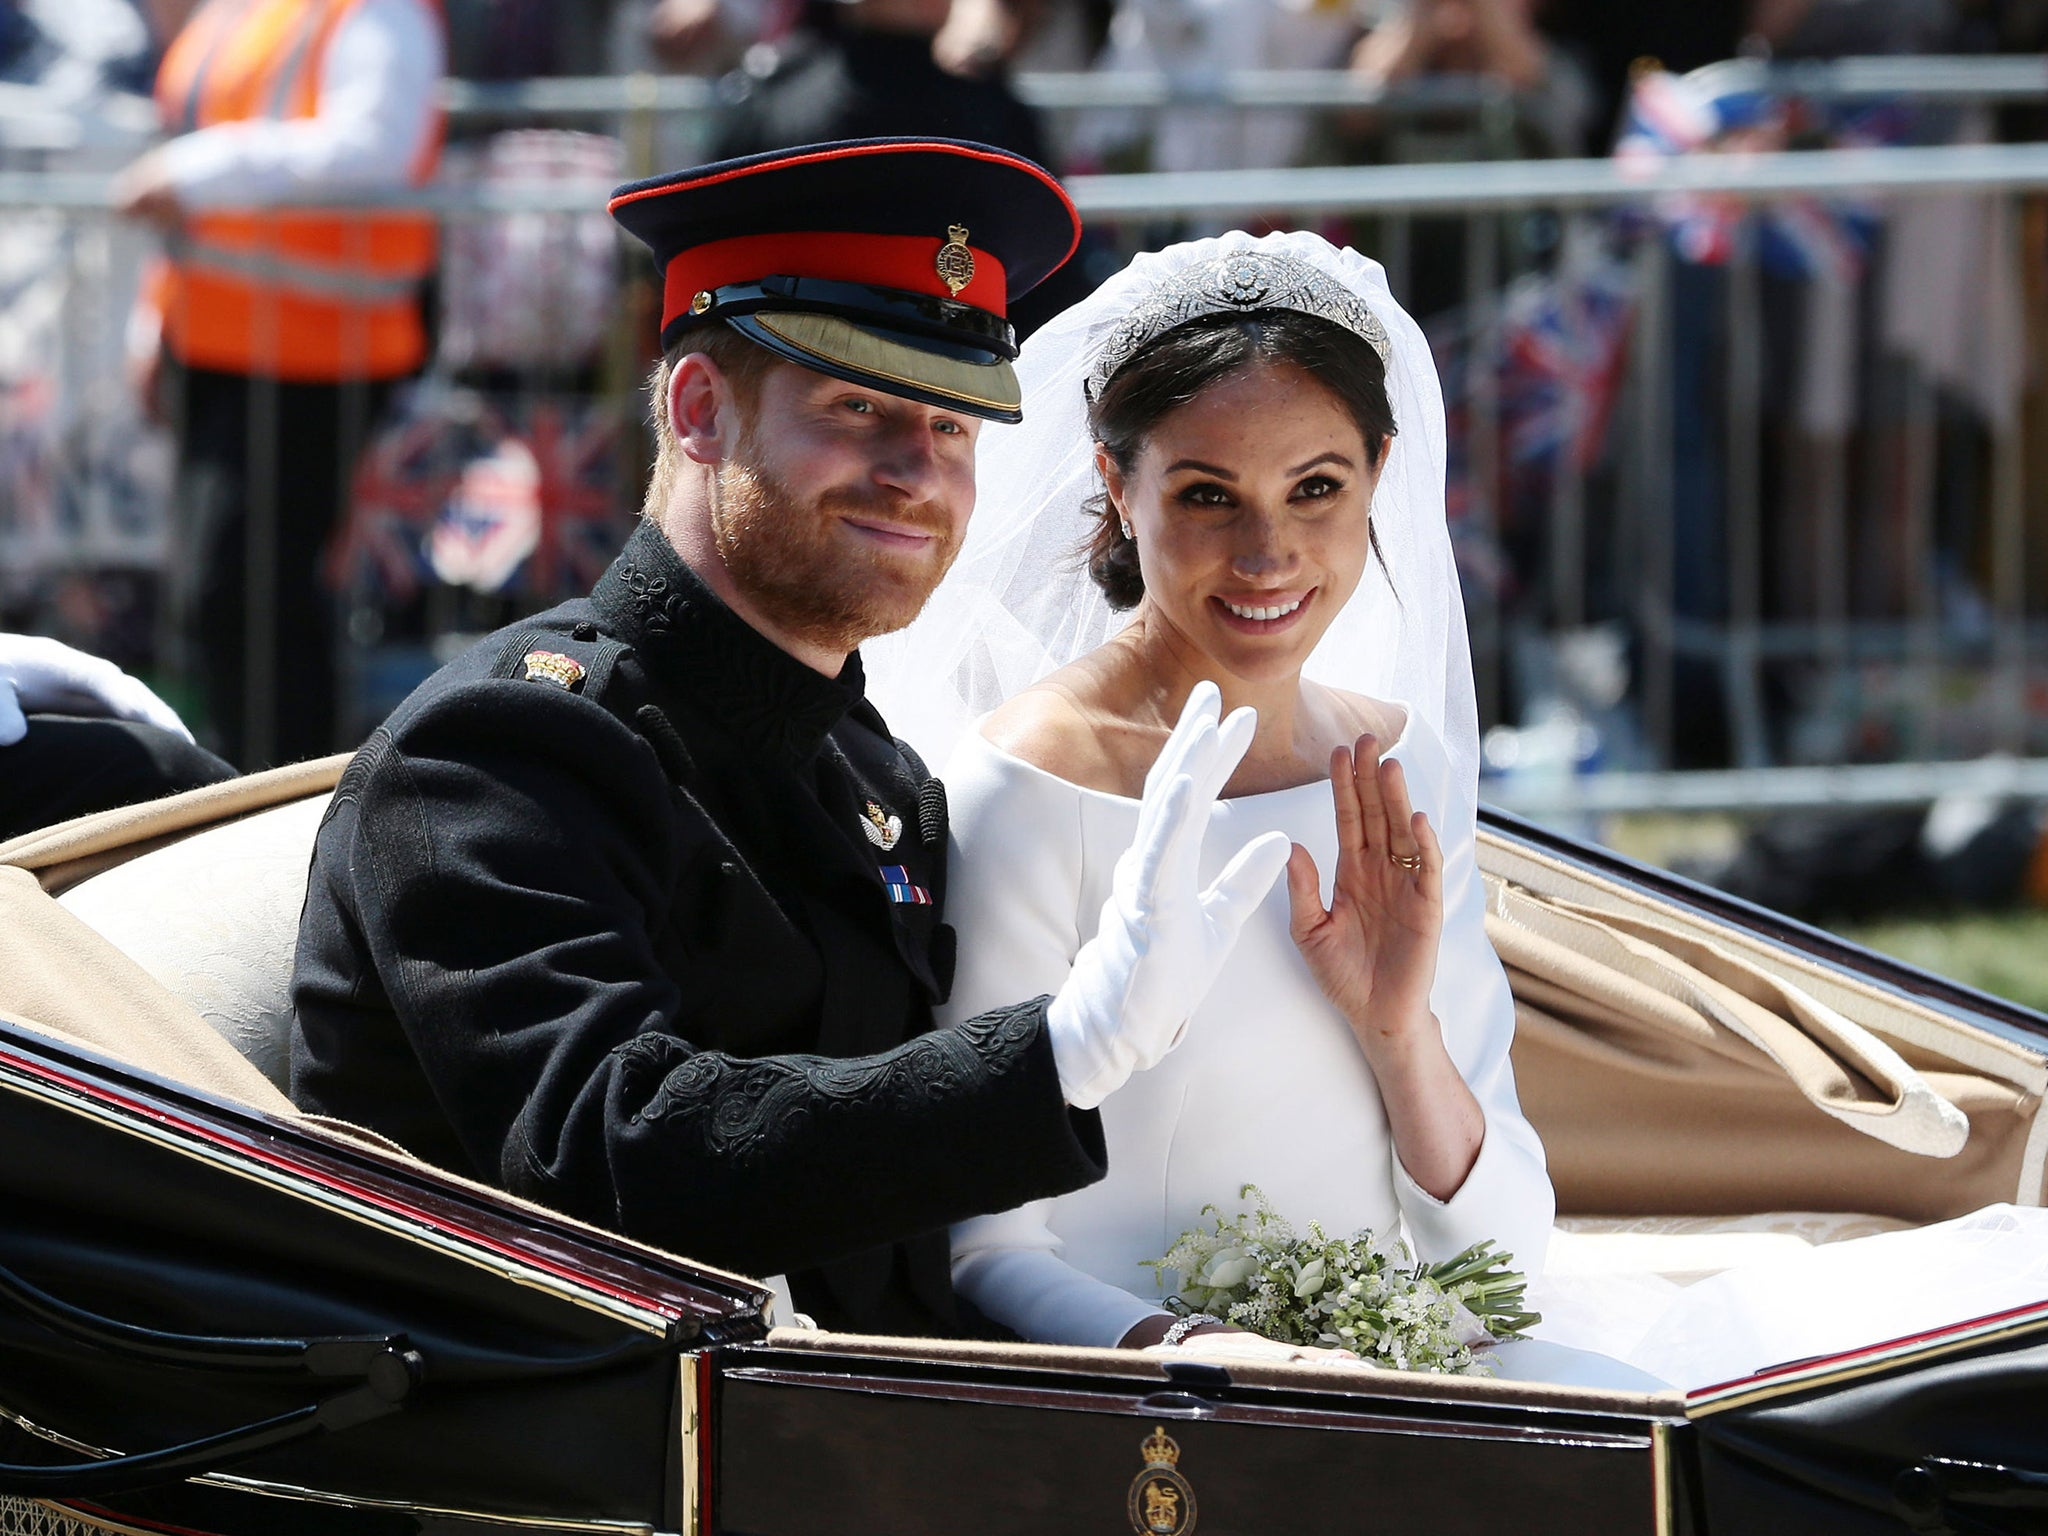 Neo-Nazis demand Prince Harry's assassination for marrying Meghan Markle, sparking counter-terror investigation